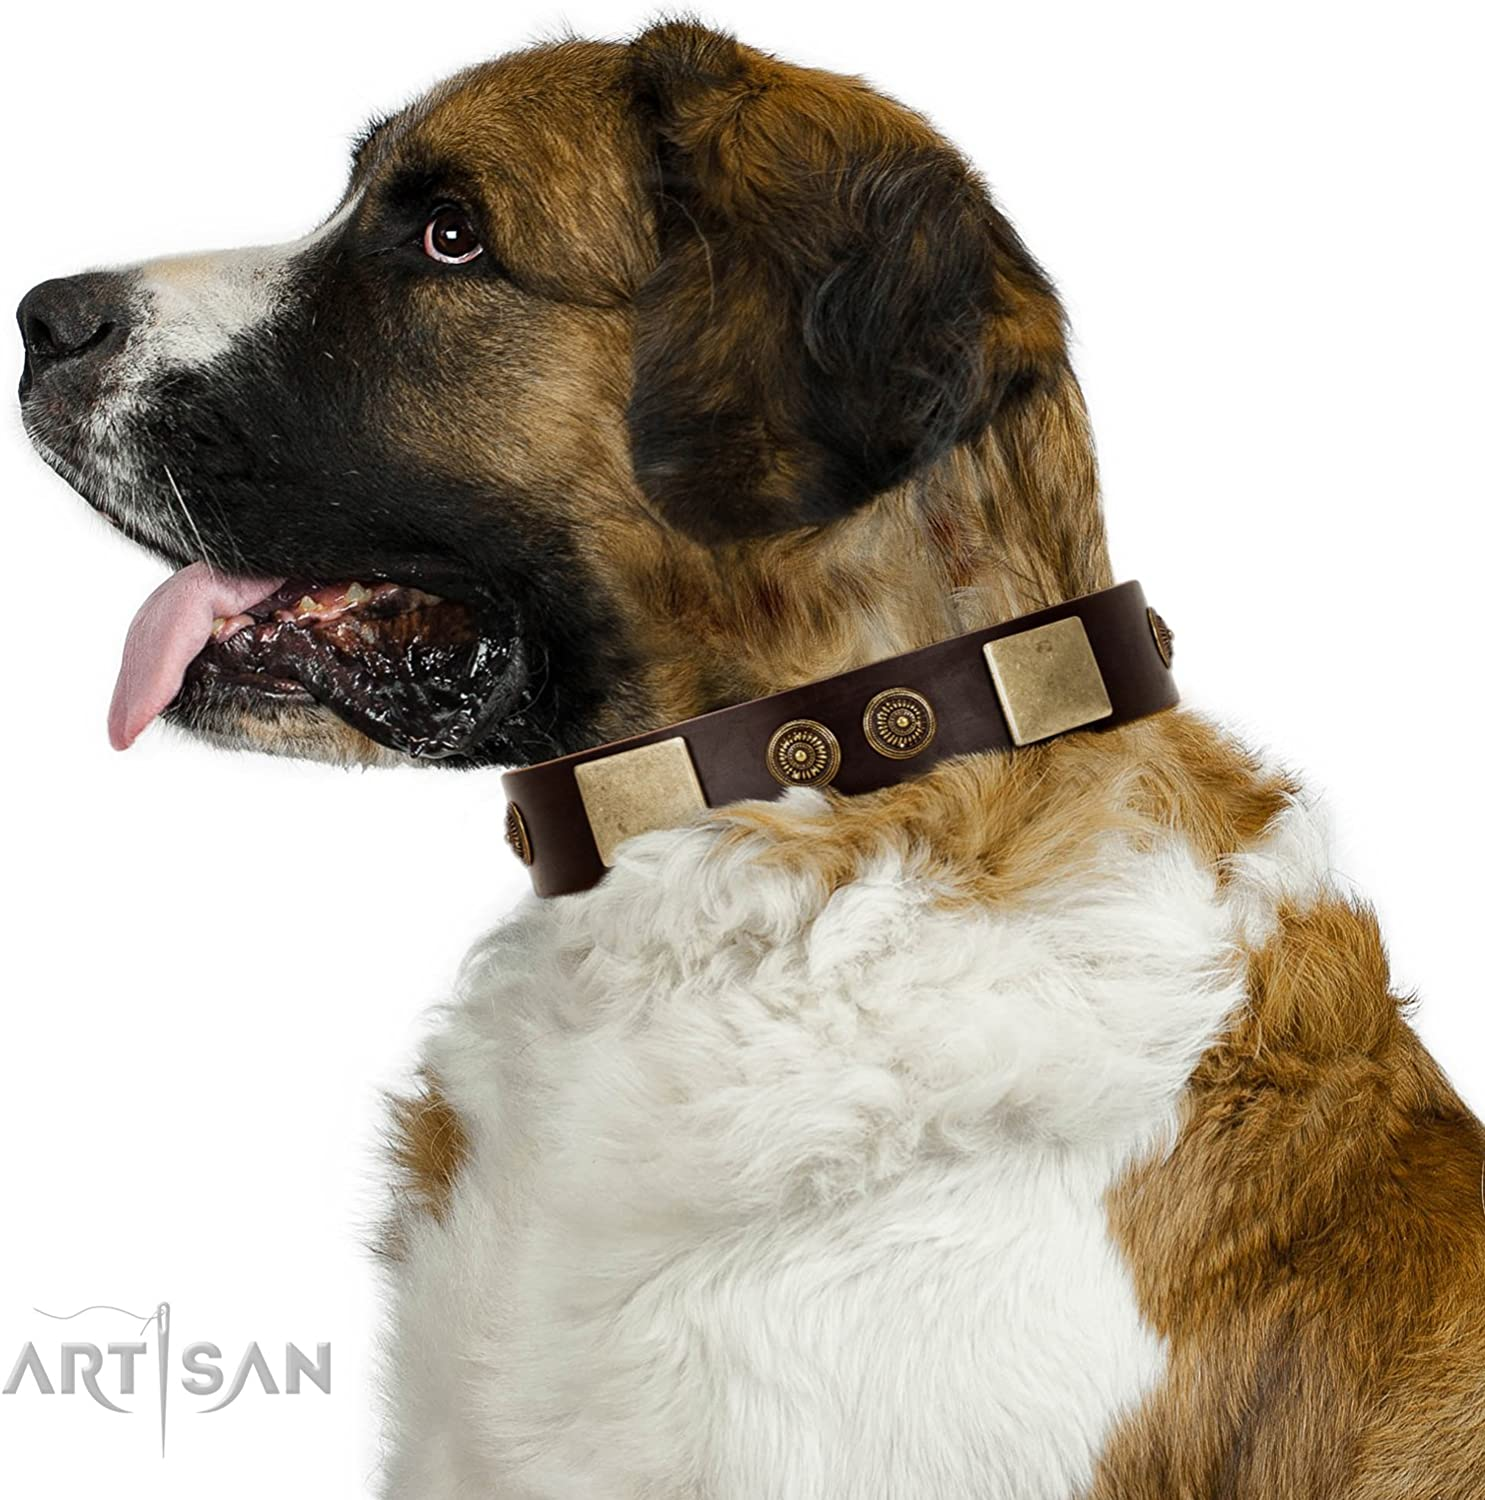 24 inch FDT Artisan Brown Leather Dog Collar with Plates and Ornate Studs  Exclusive Handcrafted Item  1 1 2 inch (40 cm) Wide  Gift Box Included